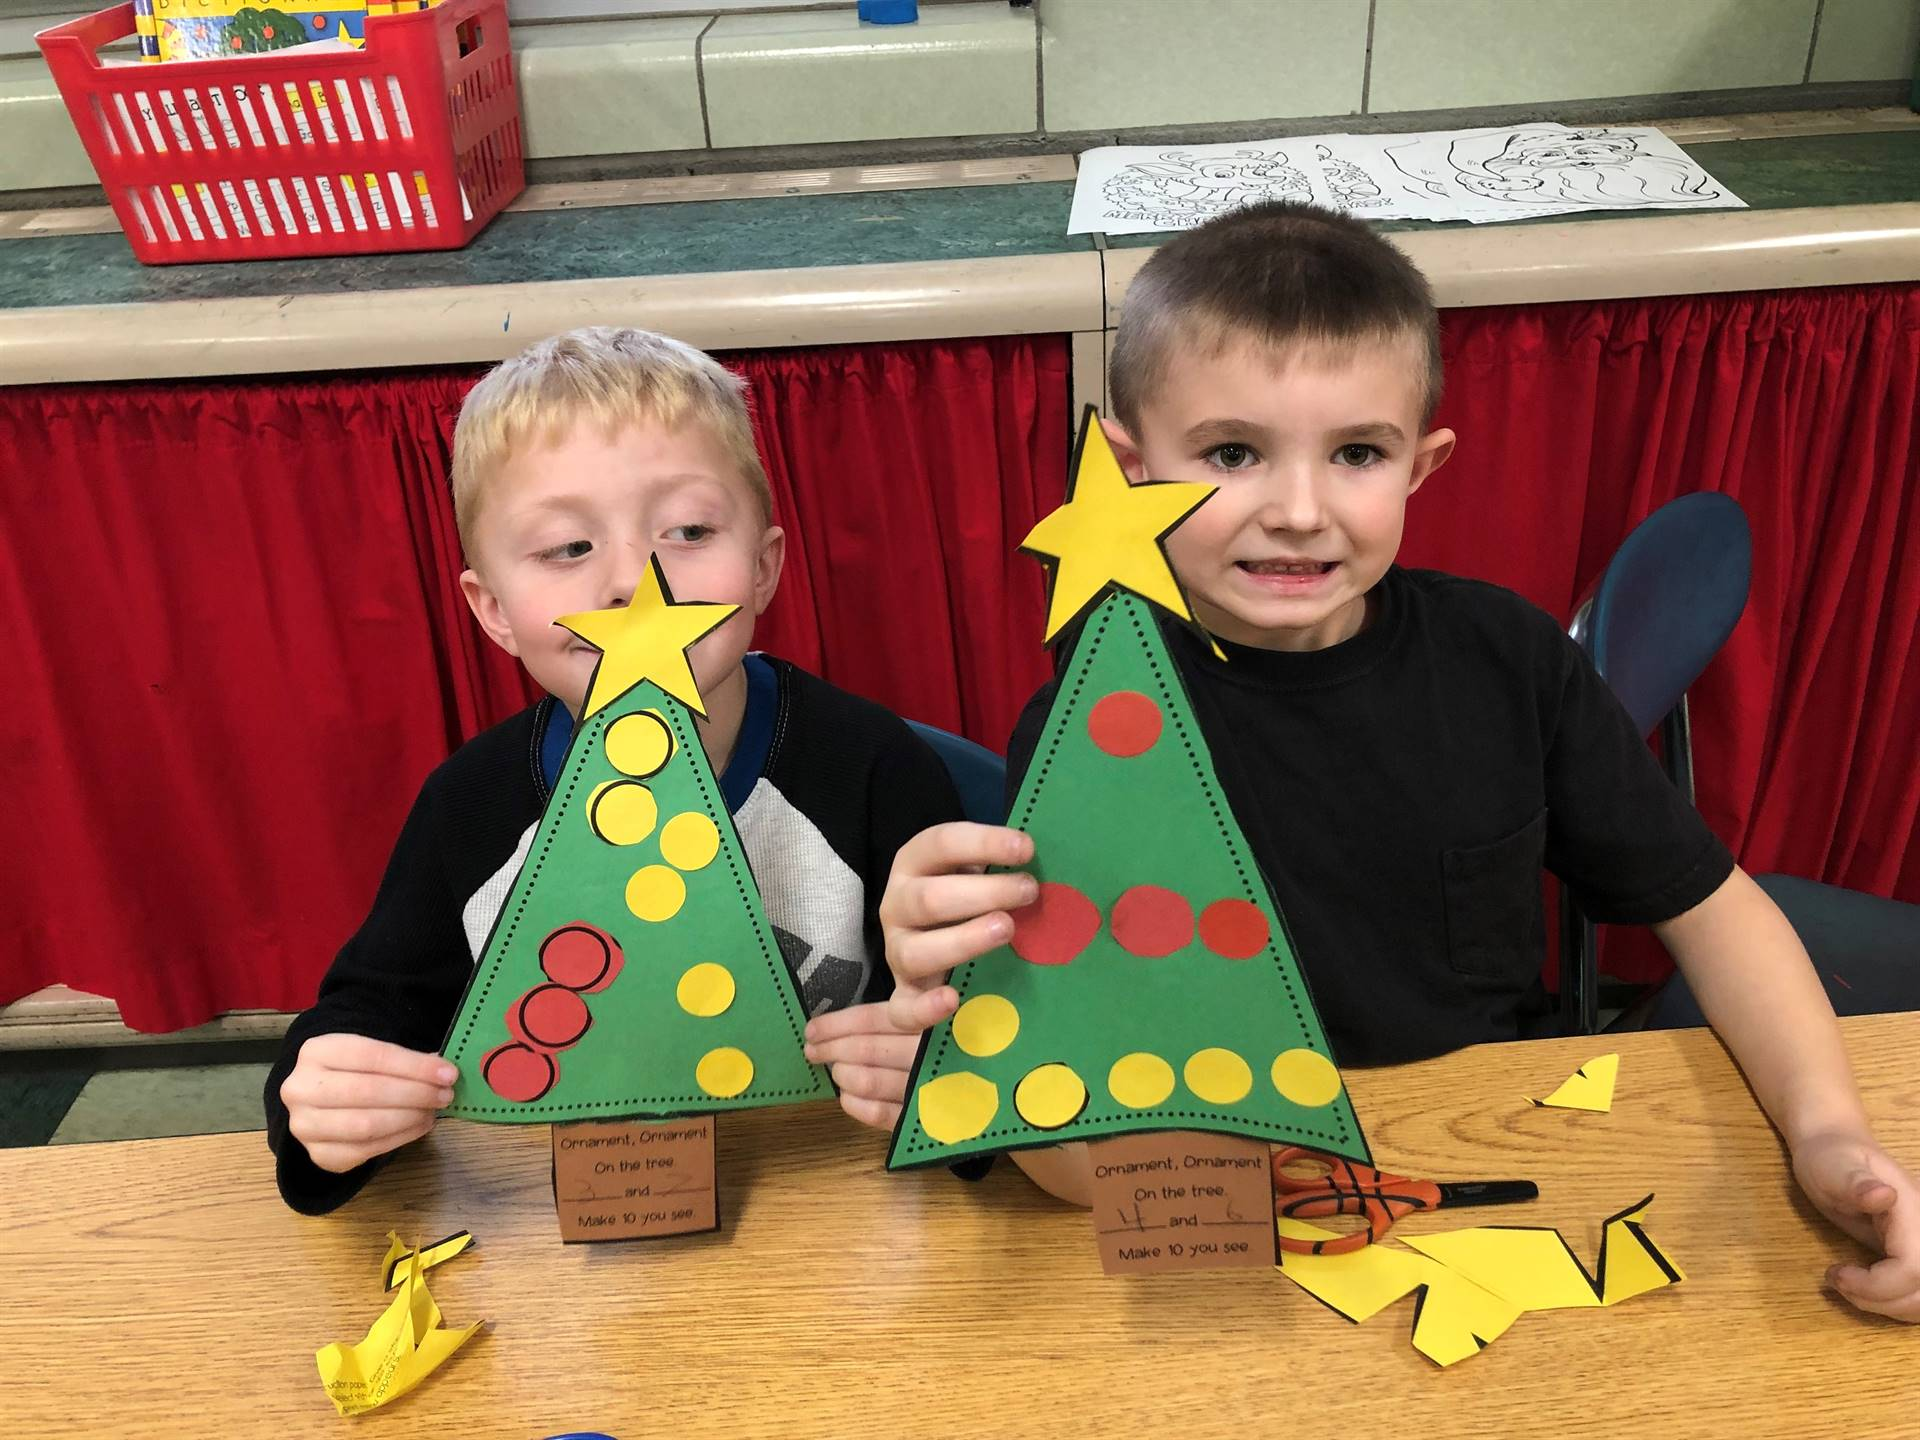 Mrs. Mattle's students are showing off their December math skills.